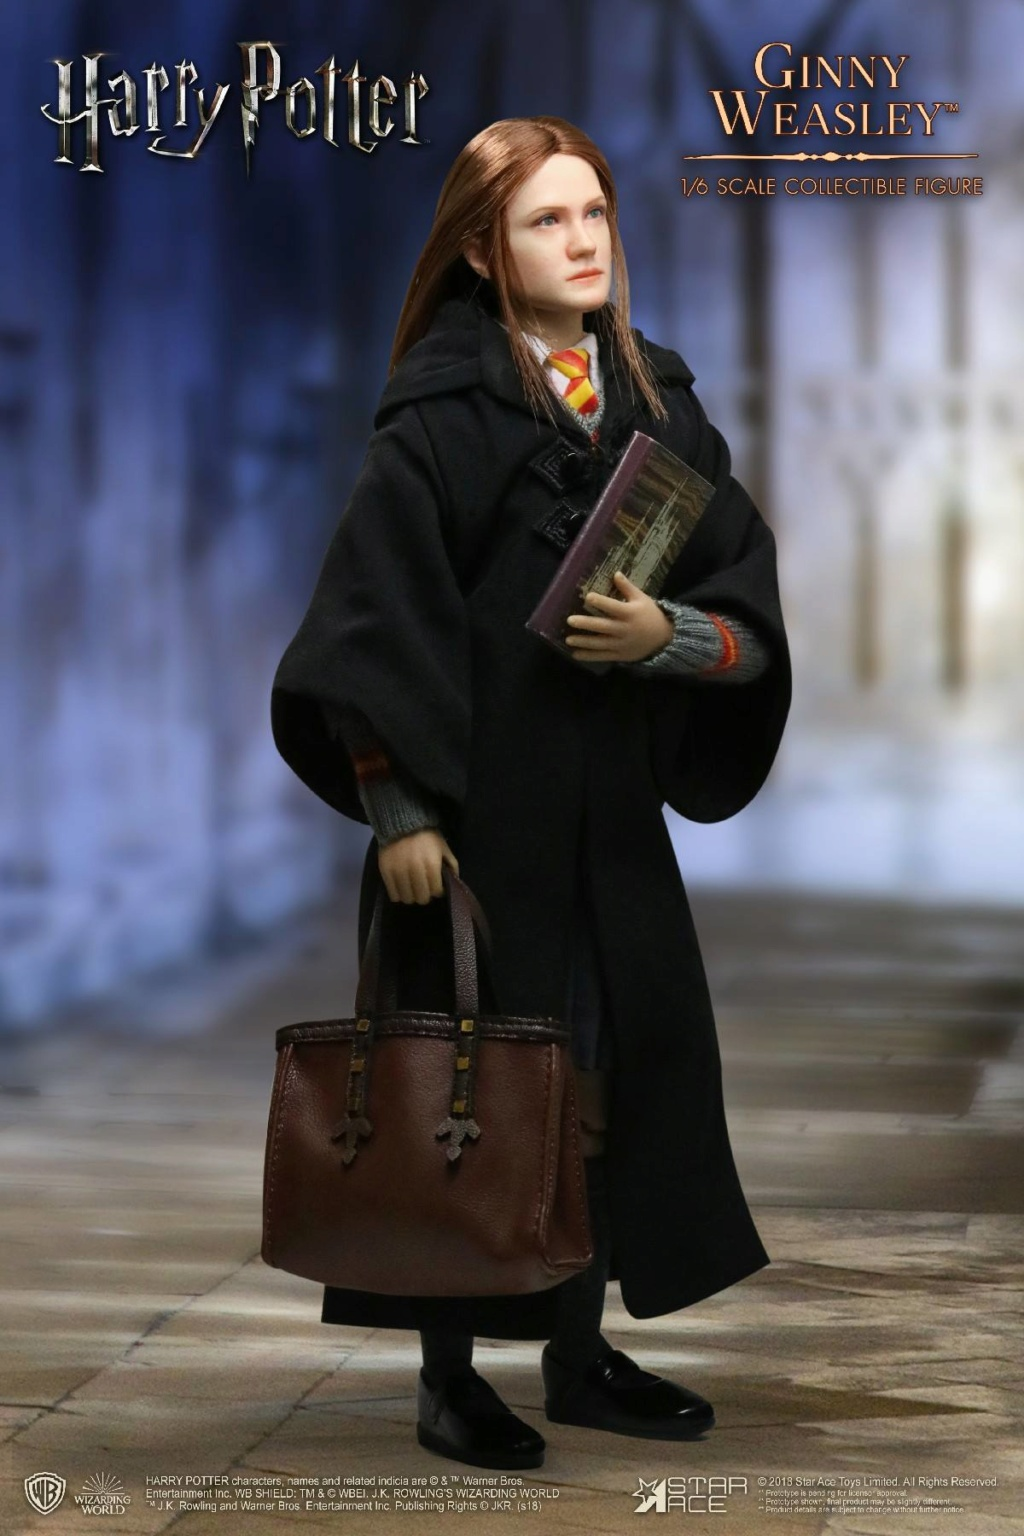 harrypotter - NEW PRODUCT: Star Ace Toys: 1/6 Harry Potter Collection - Ginny Weasley & Luna Lovegood SA062 SA063 09373010